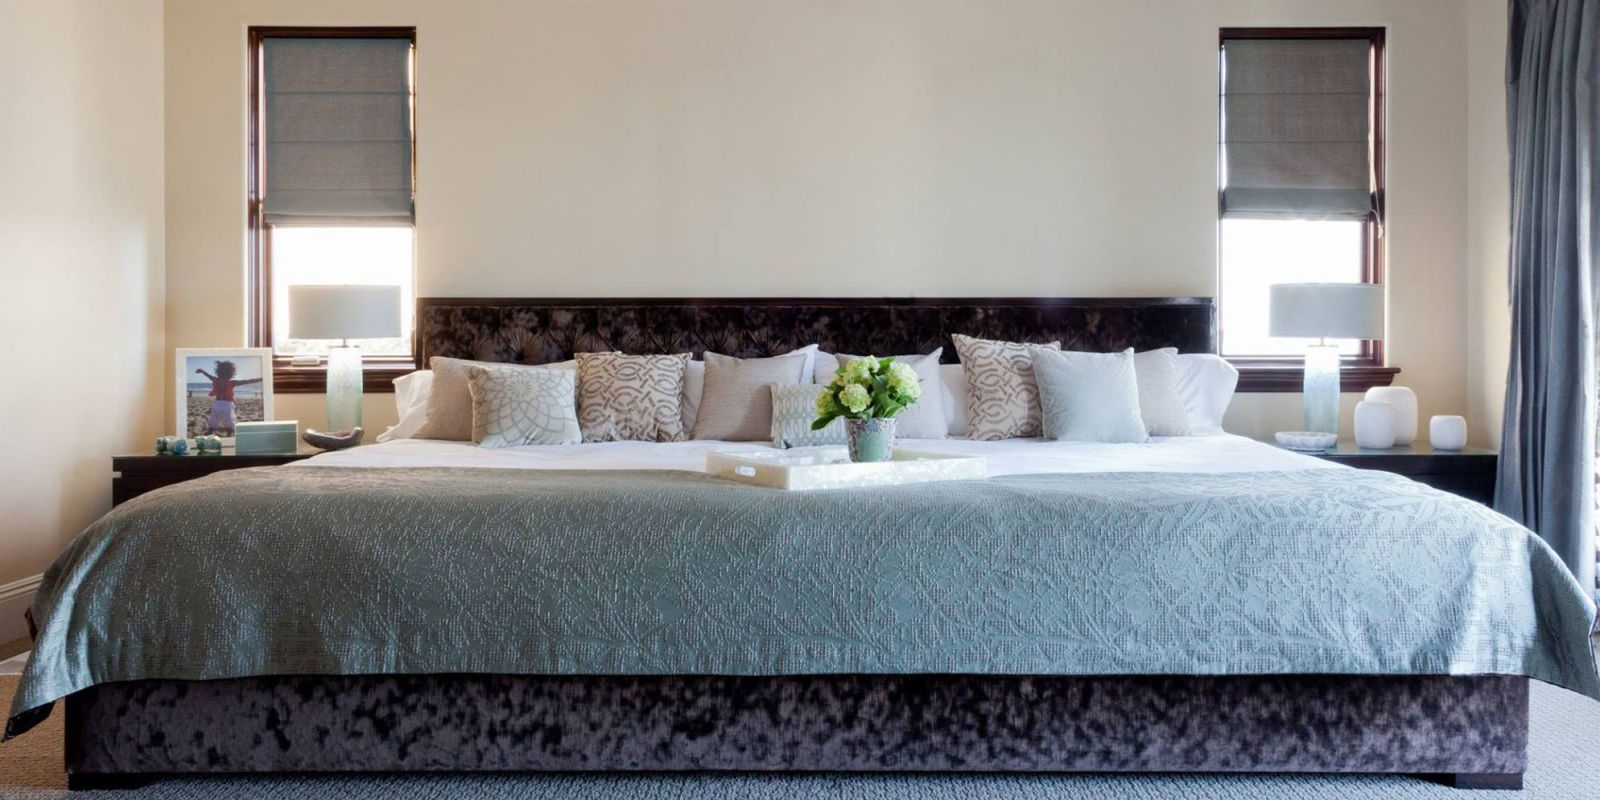 This Massive 12-Foot Wide Bed Is Here to Save Your Marriage